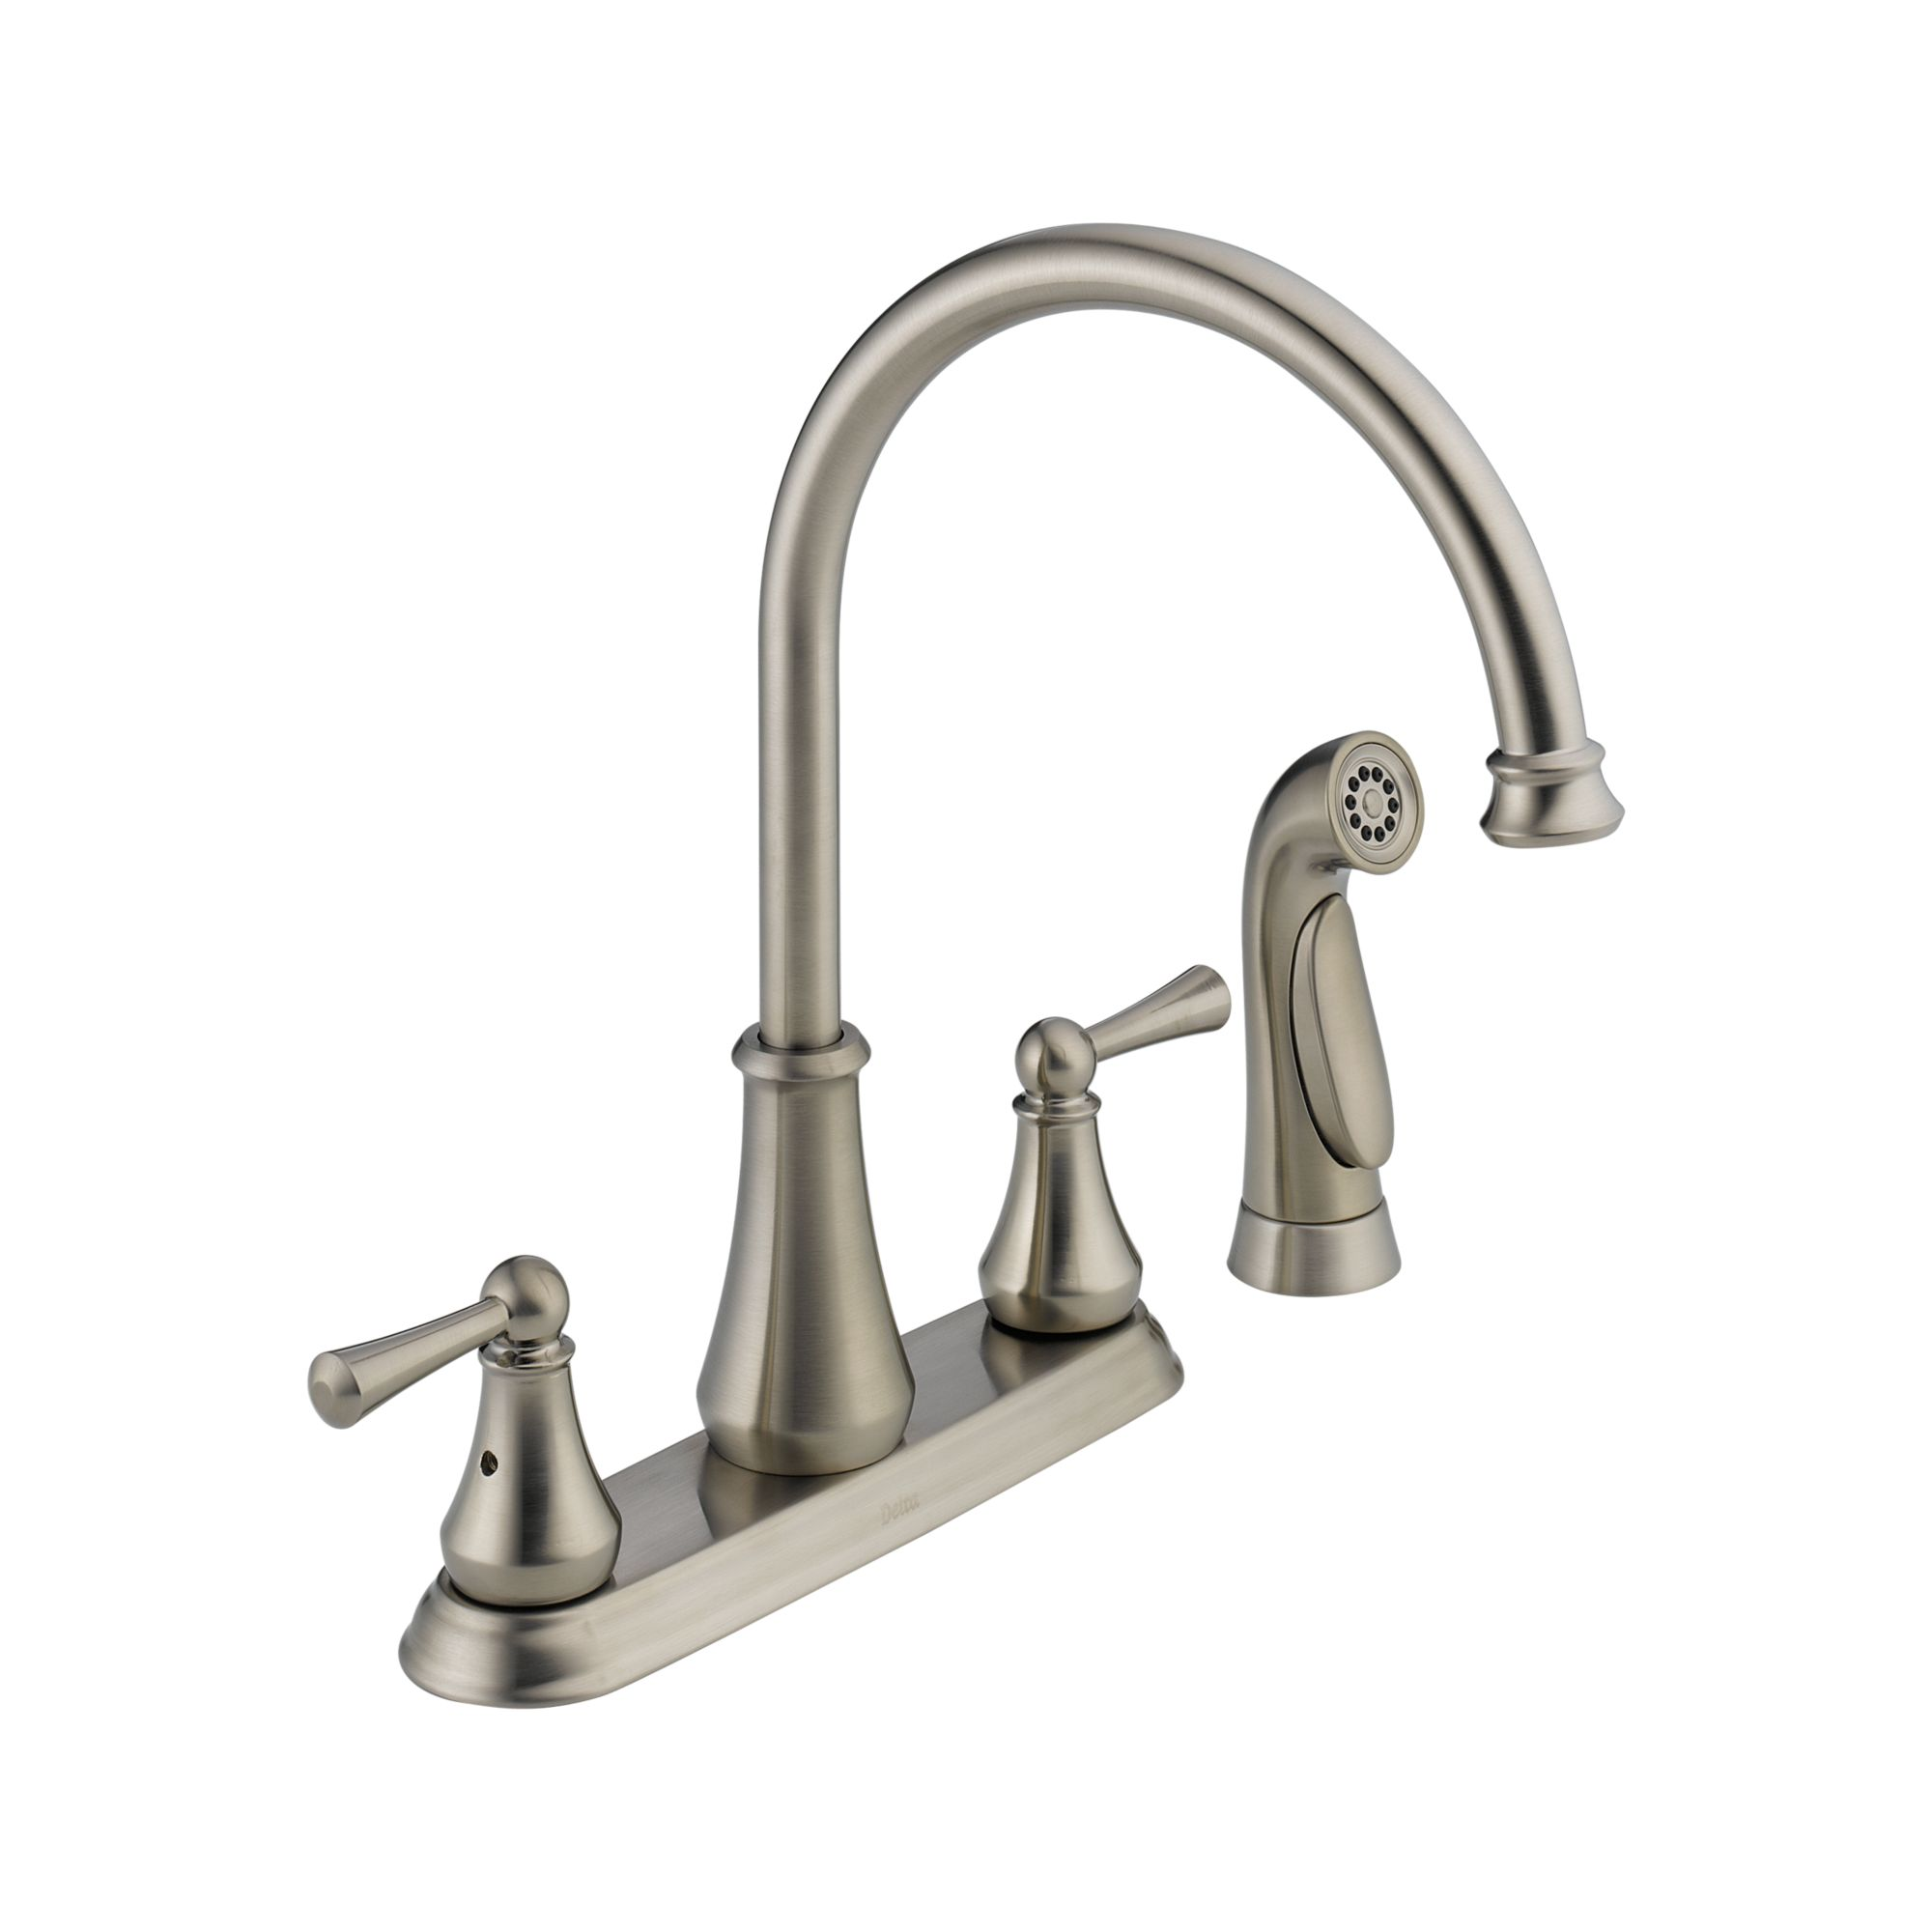 Delta 21902LF faucet direct with Double Handle for kitchen furniture inspiration